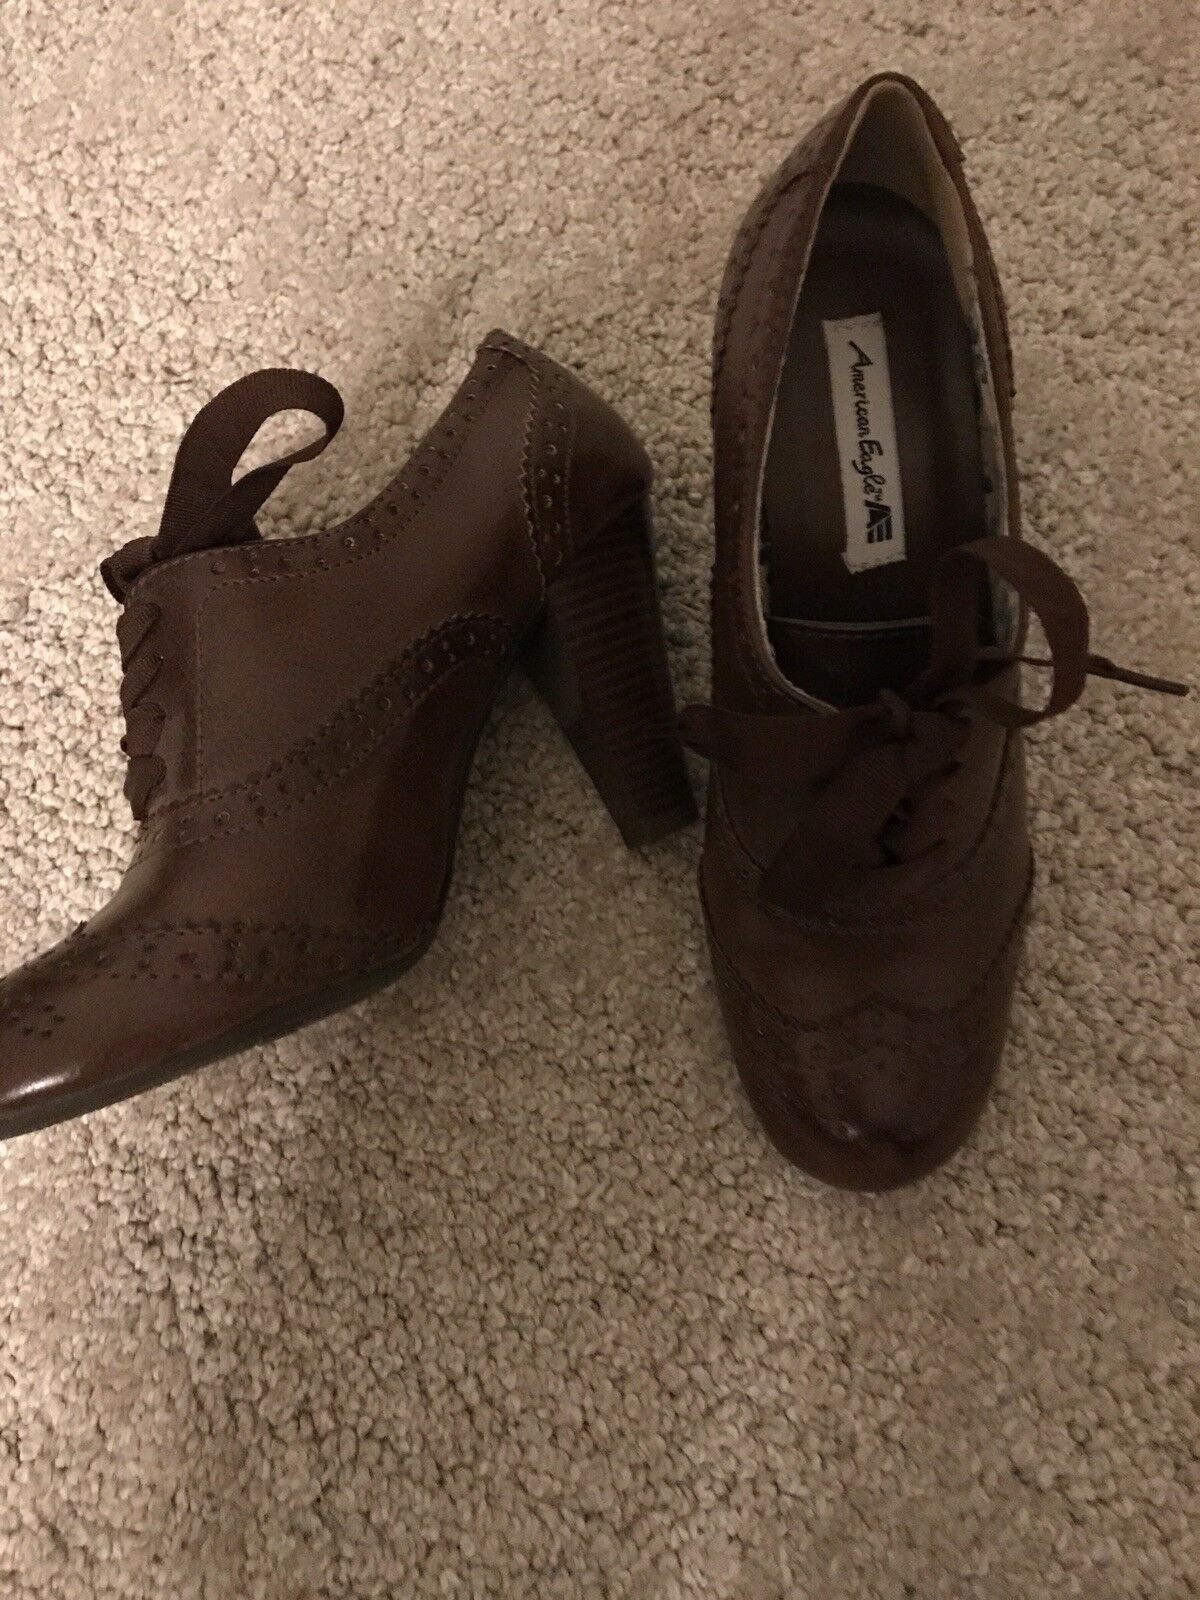 Brown ladies shoes Size 6 1/2 hardly worn